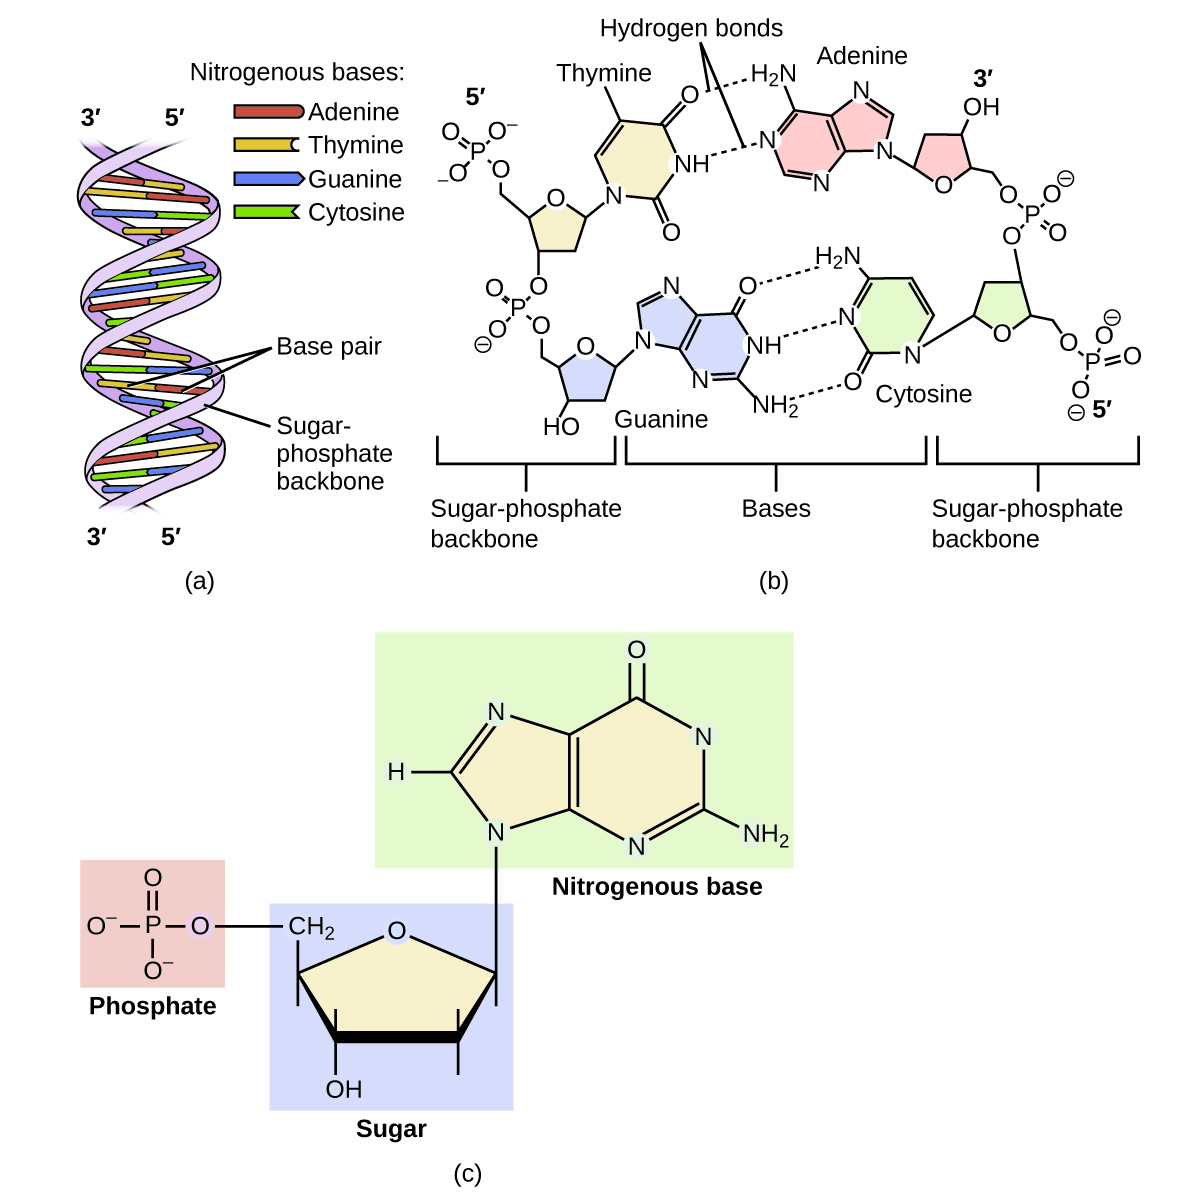 204 amines and amides chemistry diagram a shows dna as a double helix composed of the nitrogenous bases adenine thymine ccuart Gallery